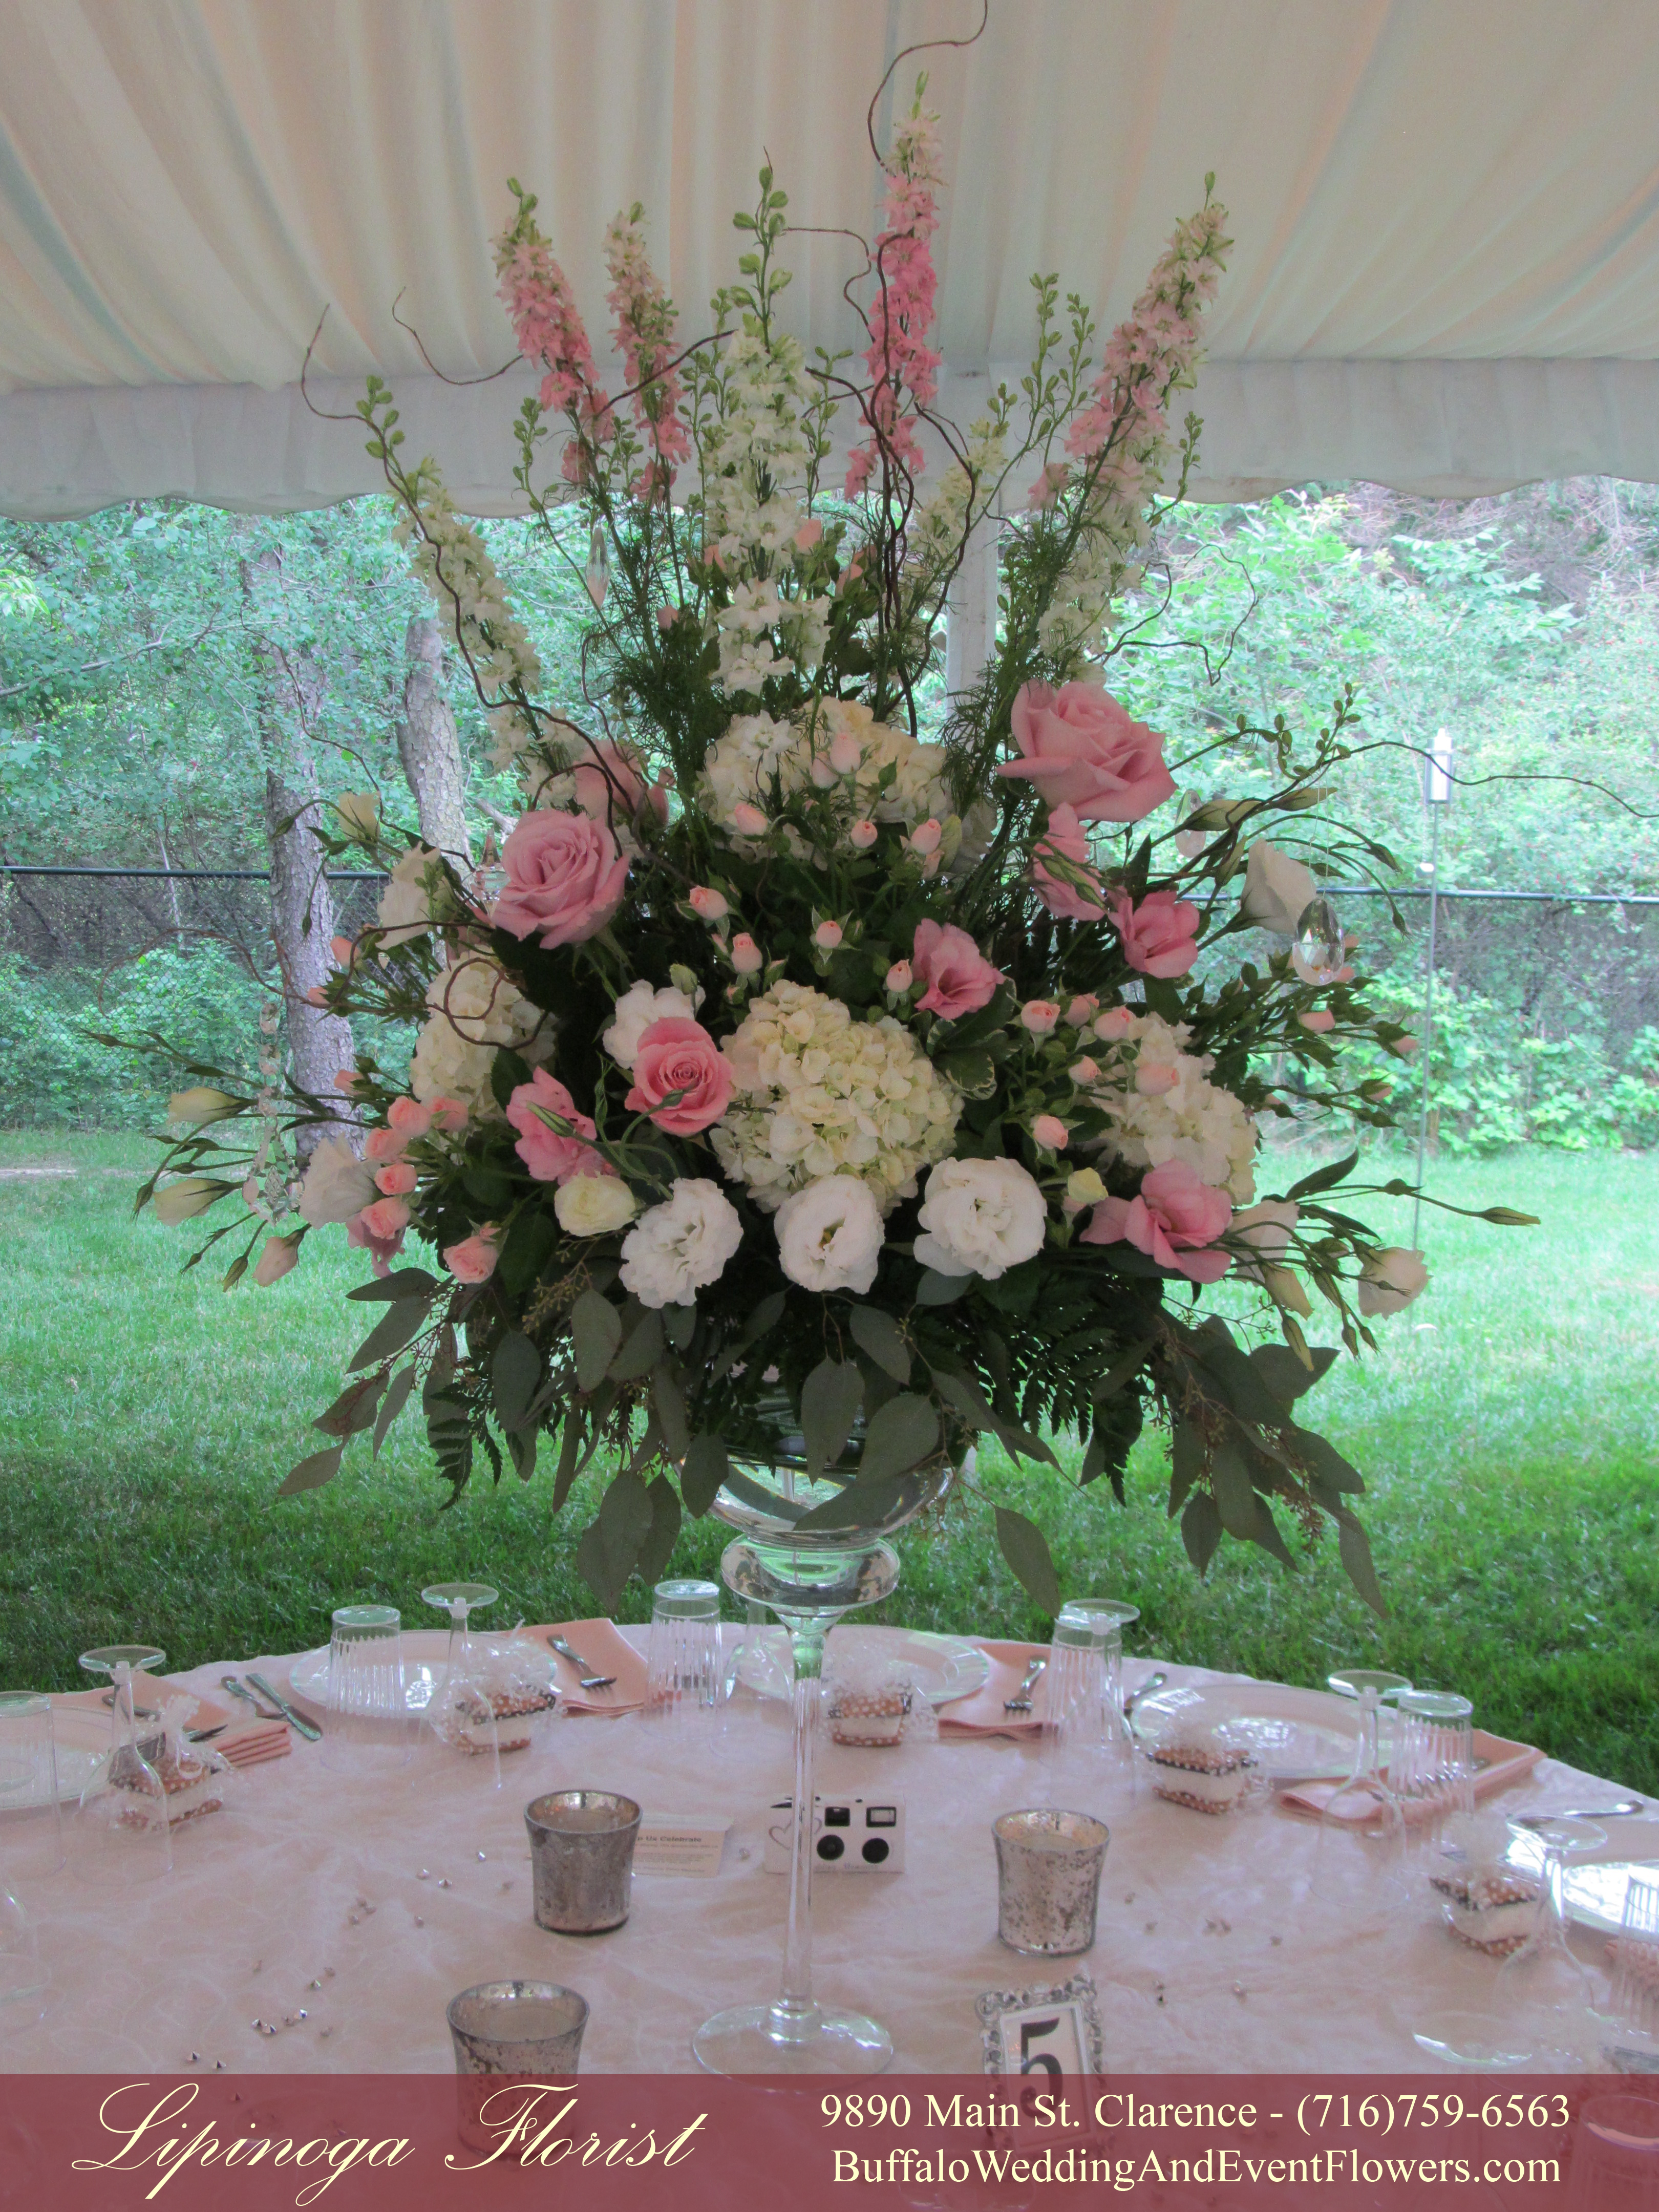 Crystals buffalo wedding event flowers by lipinoga florist wedding flowers buffalo ny 4 izmirmasajfo